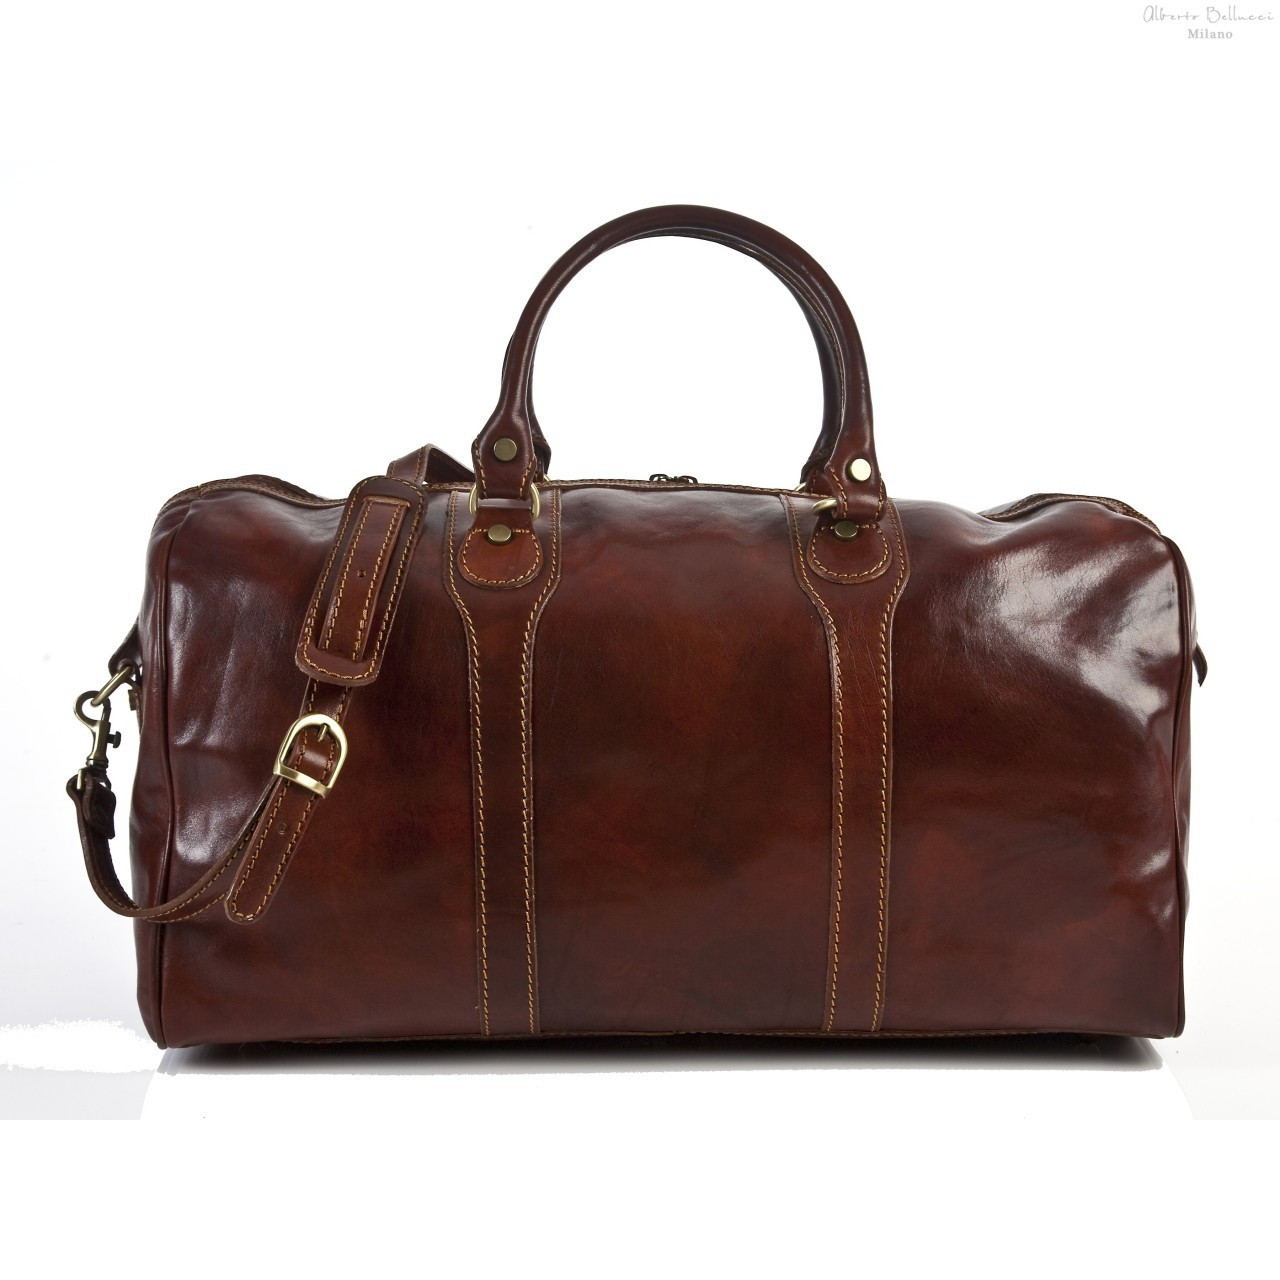 64e028f7723d6 Best Italian Leather - Amato Duffel Bag - Italian Leather Duffel Bag